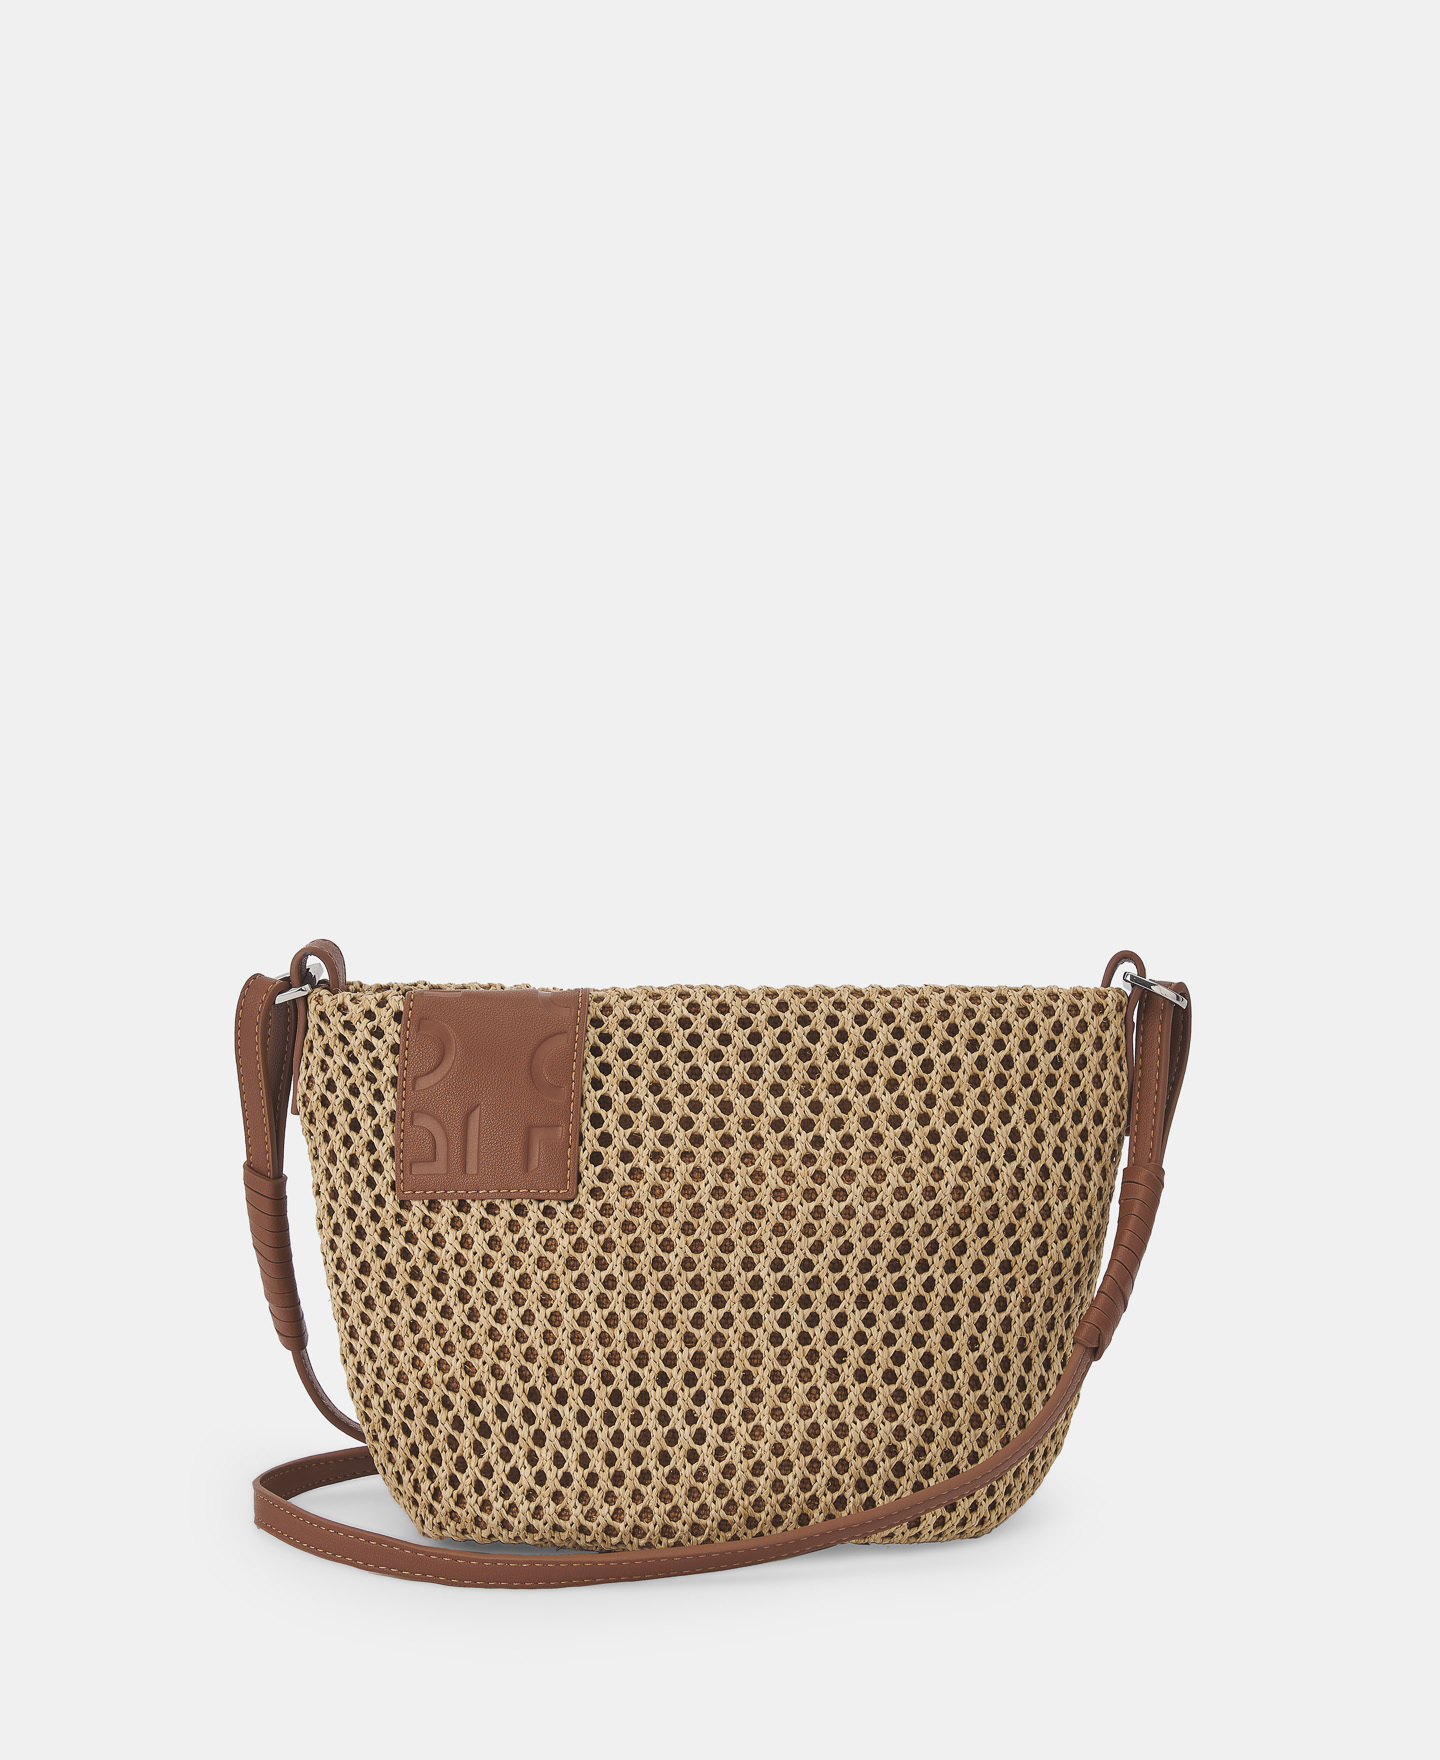 OPENWORK RAFFIA CAMEL SHOULDER BAG  [212591634111]